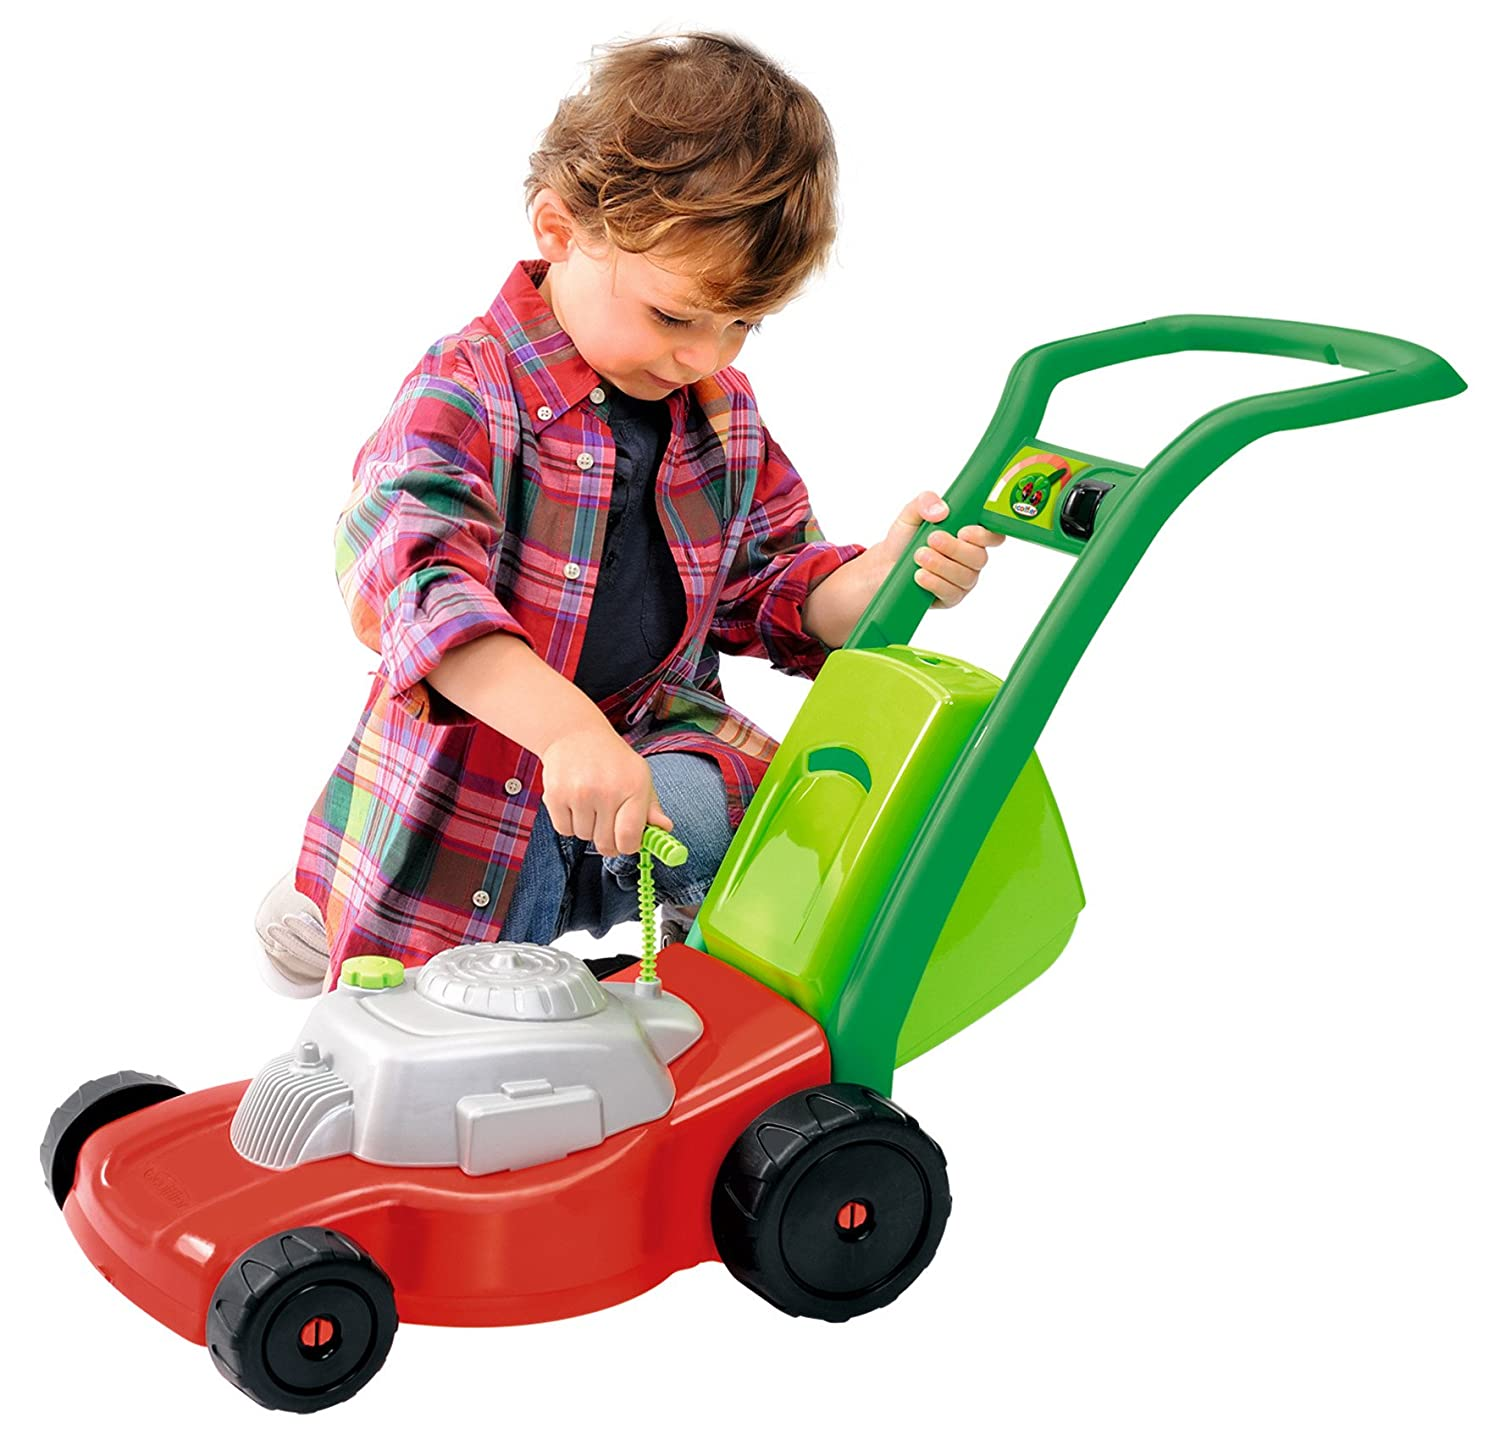 Toy Lawn Mower : The best toy lawn mowers mower wizard